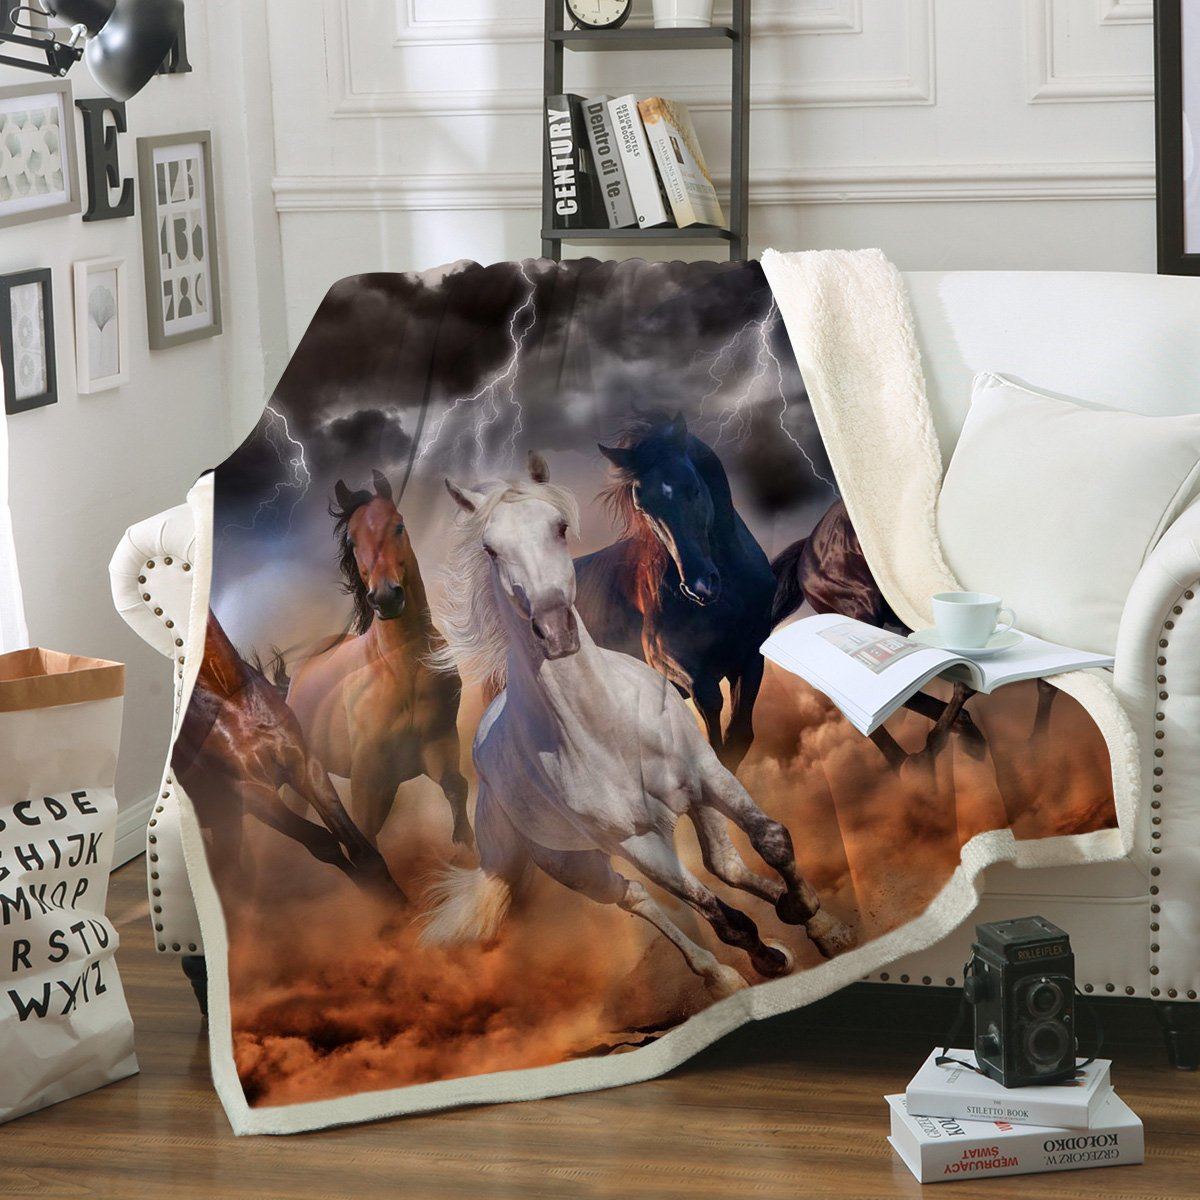 Sleepwish Galloping Horse Blanket Cowgirl Cowboy Western Fleece Blanket Plush Sherpa Throw Blanket for Couch Sofa (Throw 50 x 60) Youhao STR015984